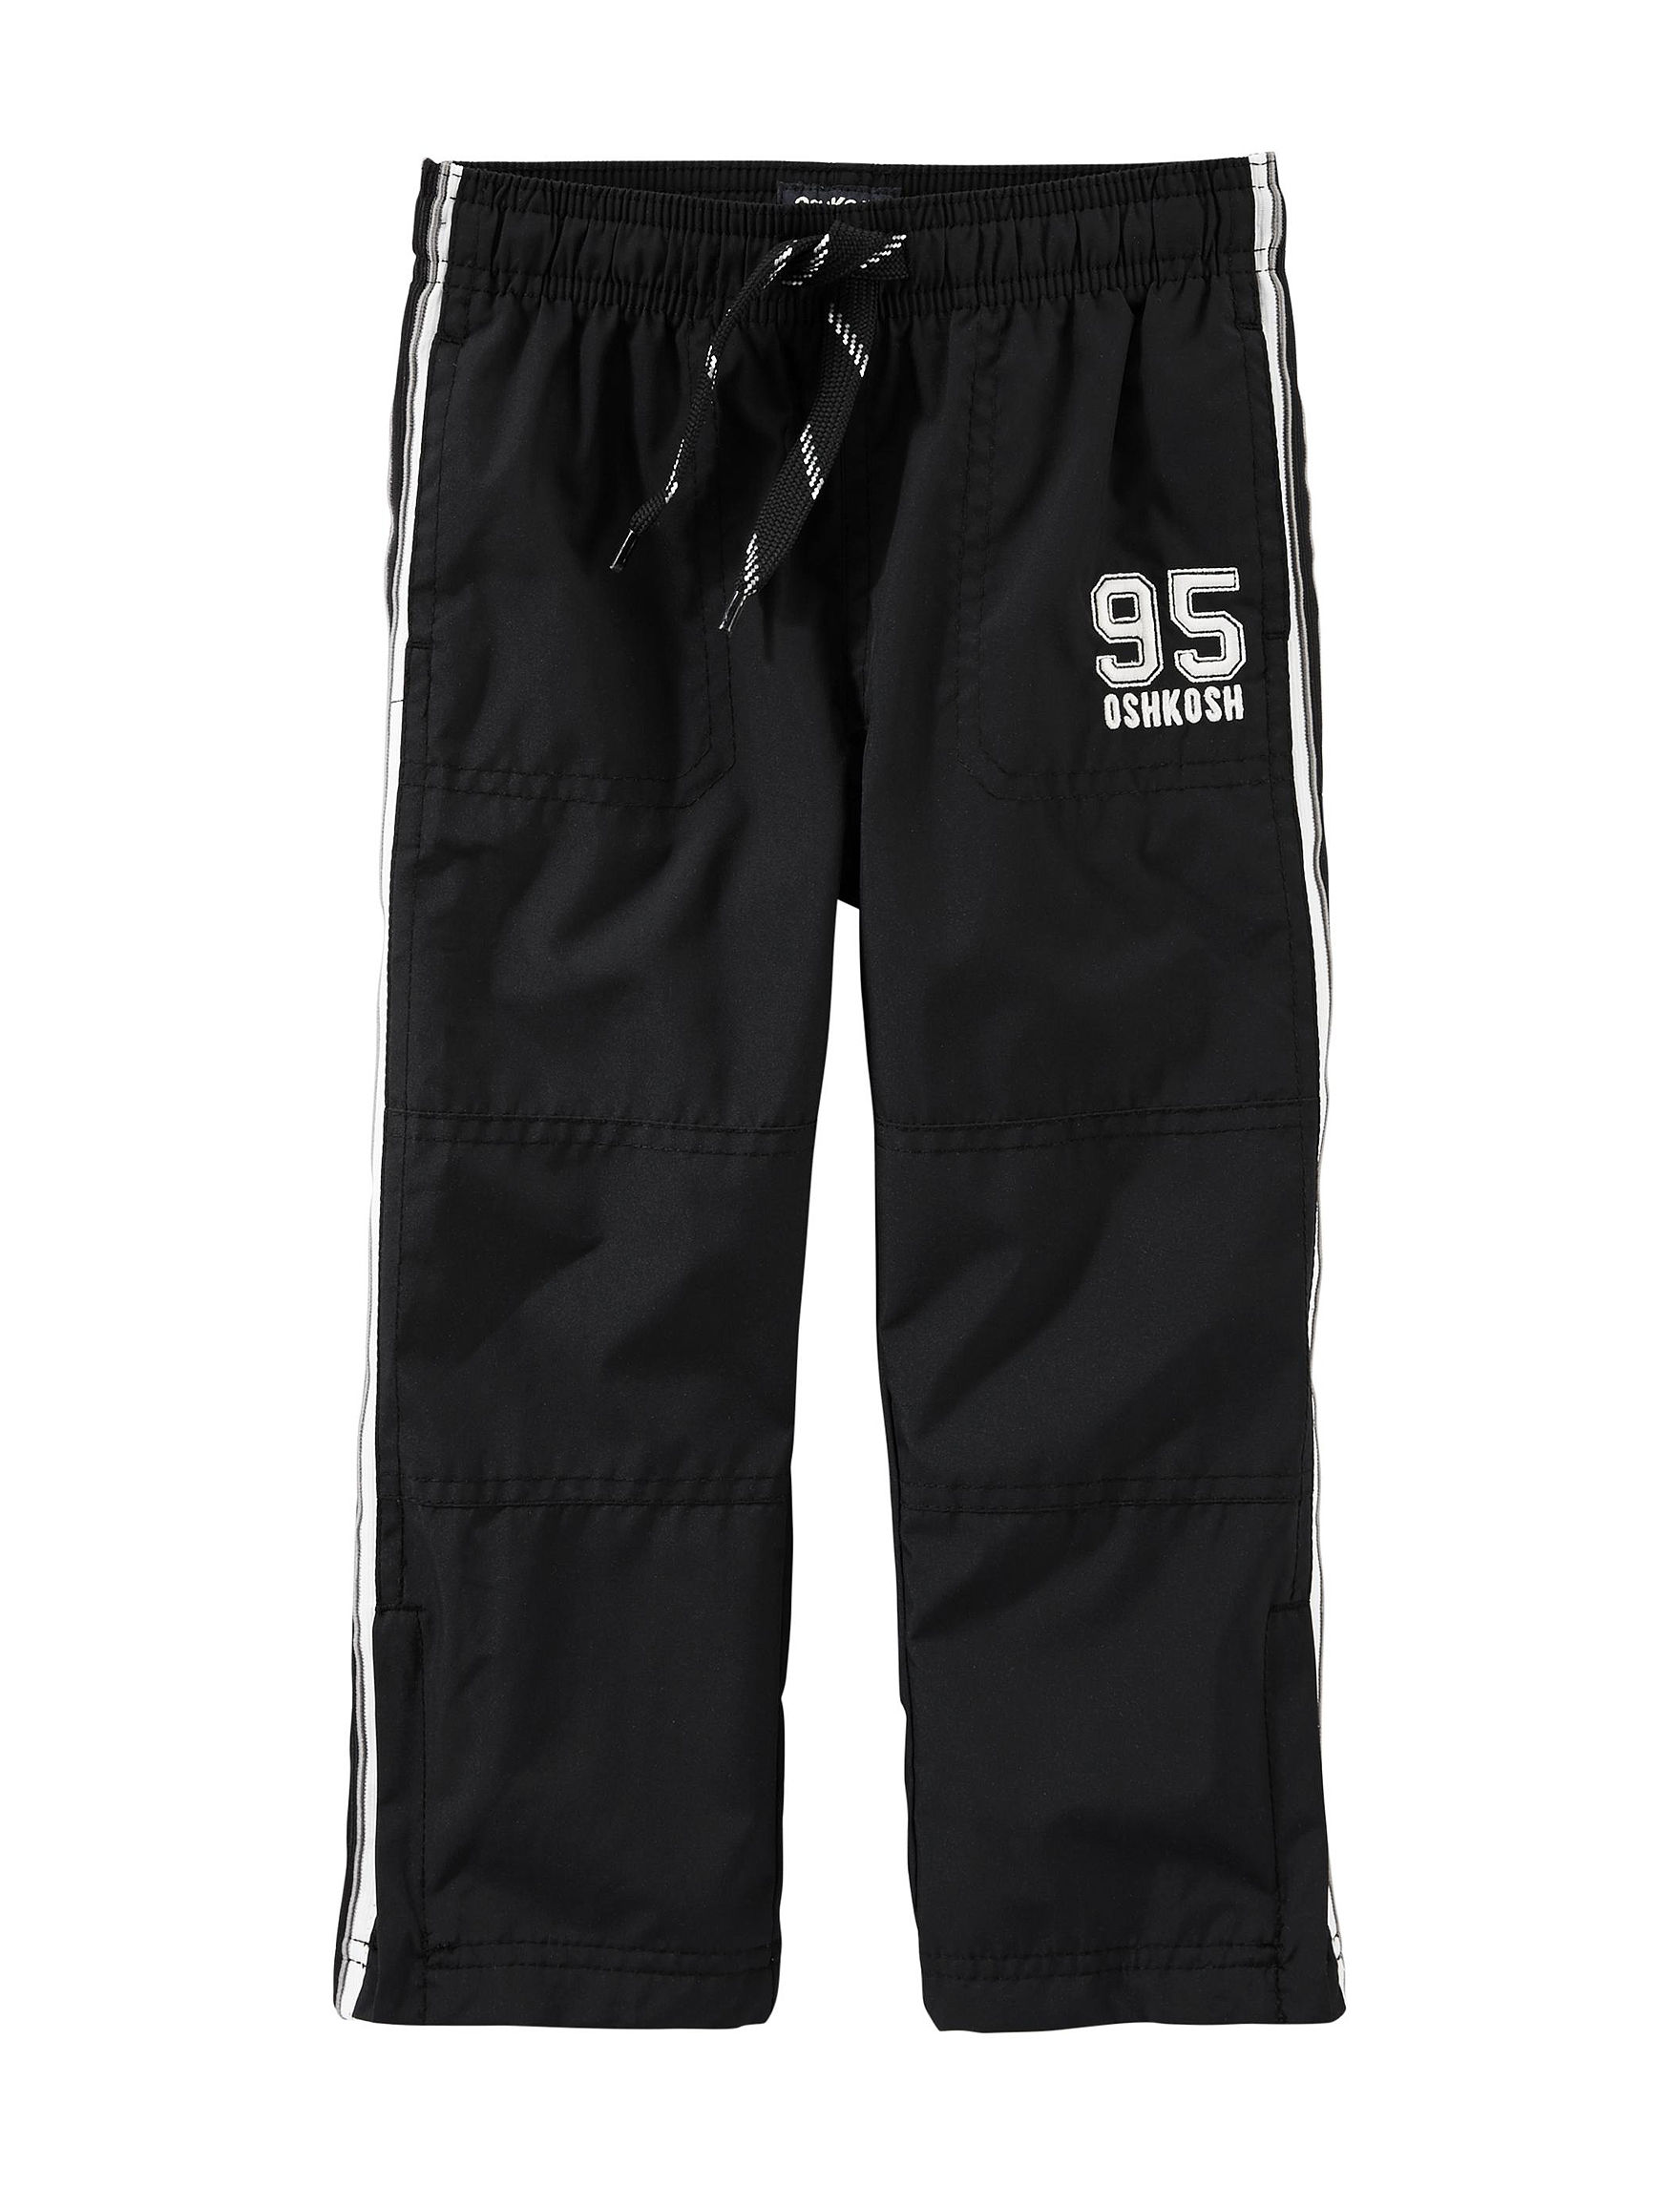 Oshkosh B'Gosh Black Soft Pants